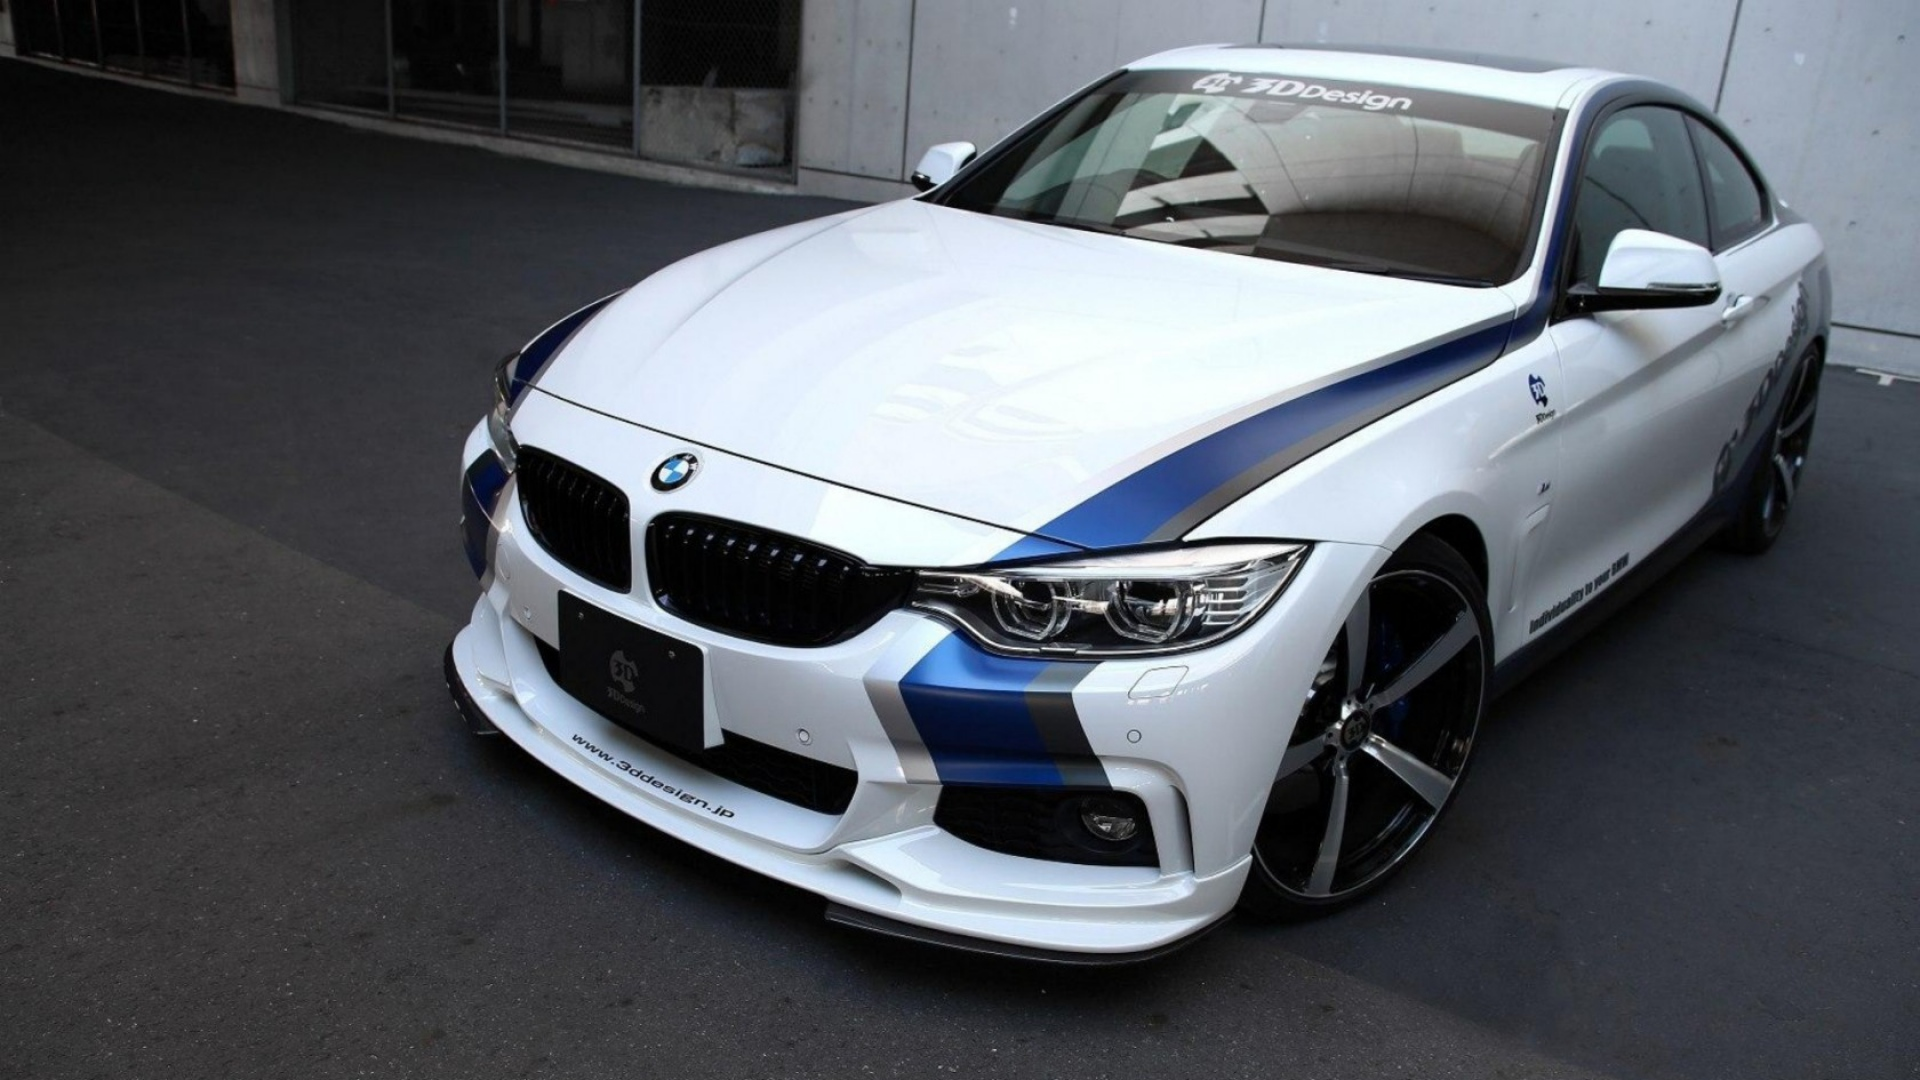 Download wallpaper 1920x1080 2014 bmw 4 series concept - Bmw cars wallpapers hd free download ...